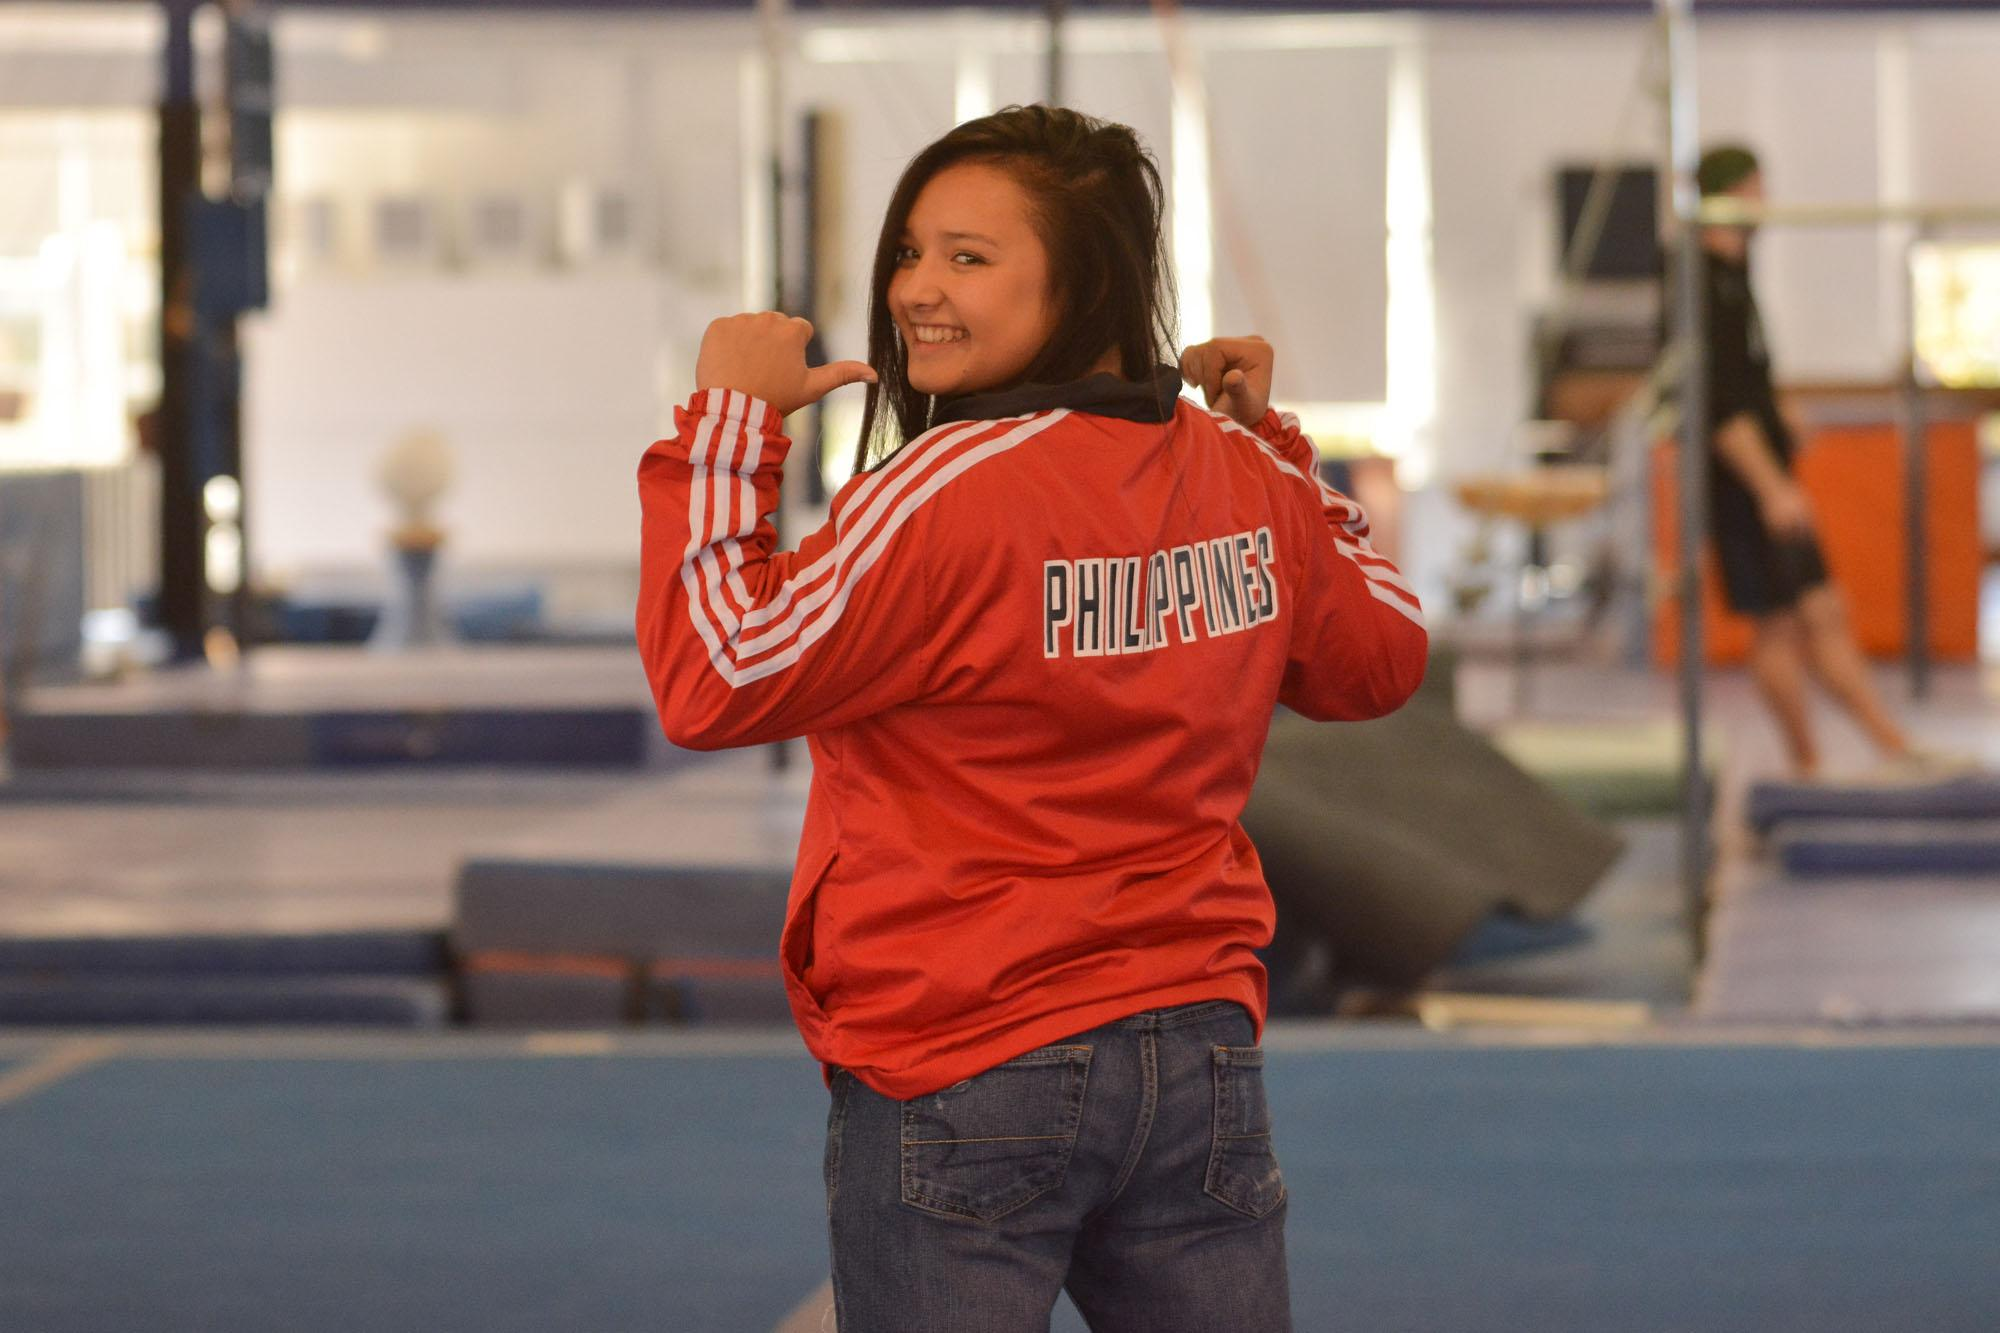 %3Cp%3EFreshman+gymnast+Lizzy+LeDuc+has+had+the+opportunity+to+compete+on+the+Philippine+National+Team+and+now+is+shooting+for+success+as+an+Illini.%3C%2Fp%3E